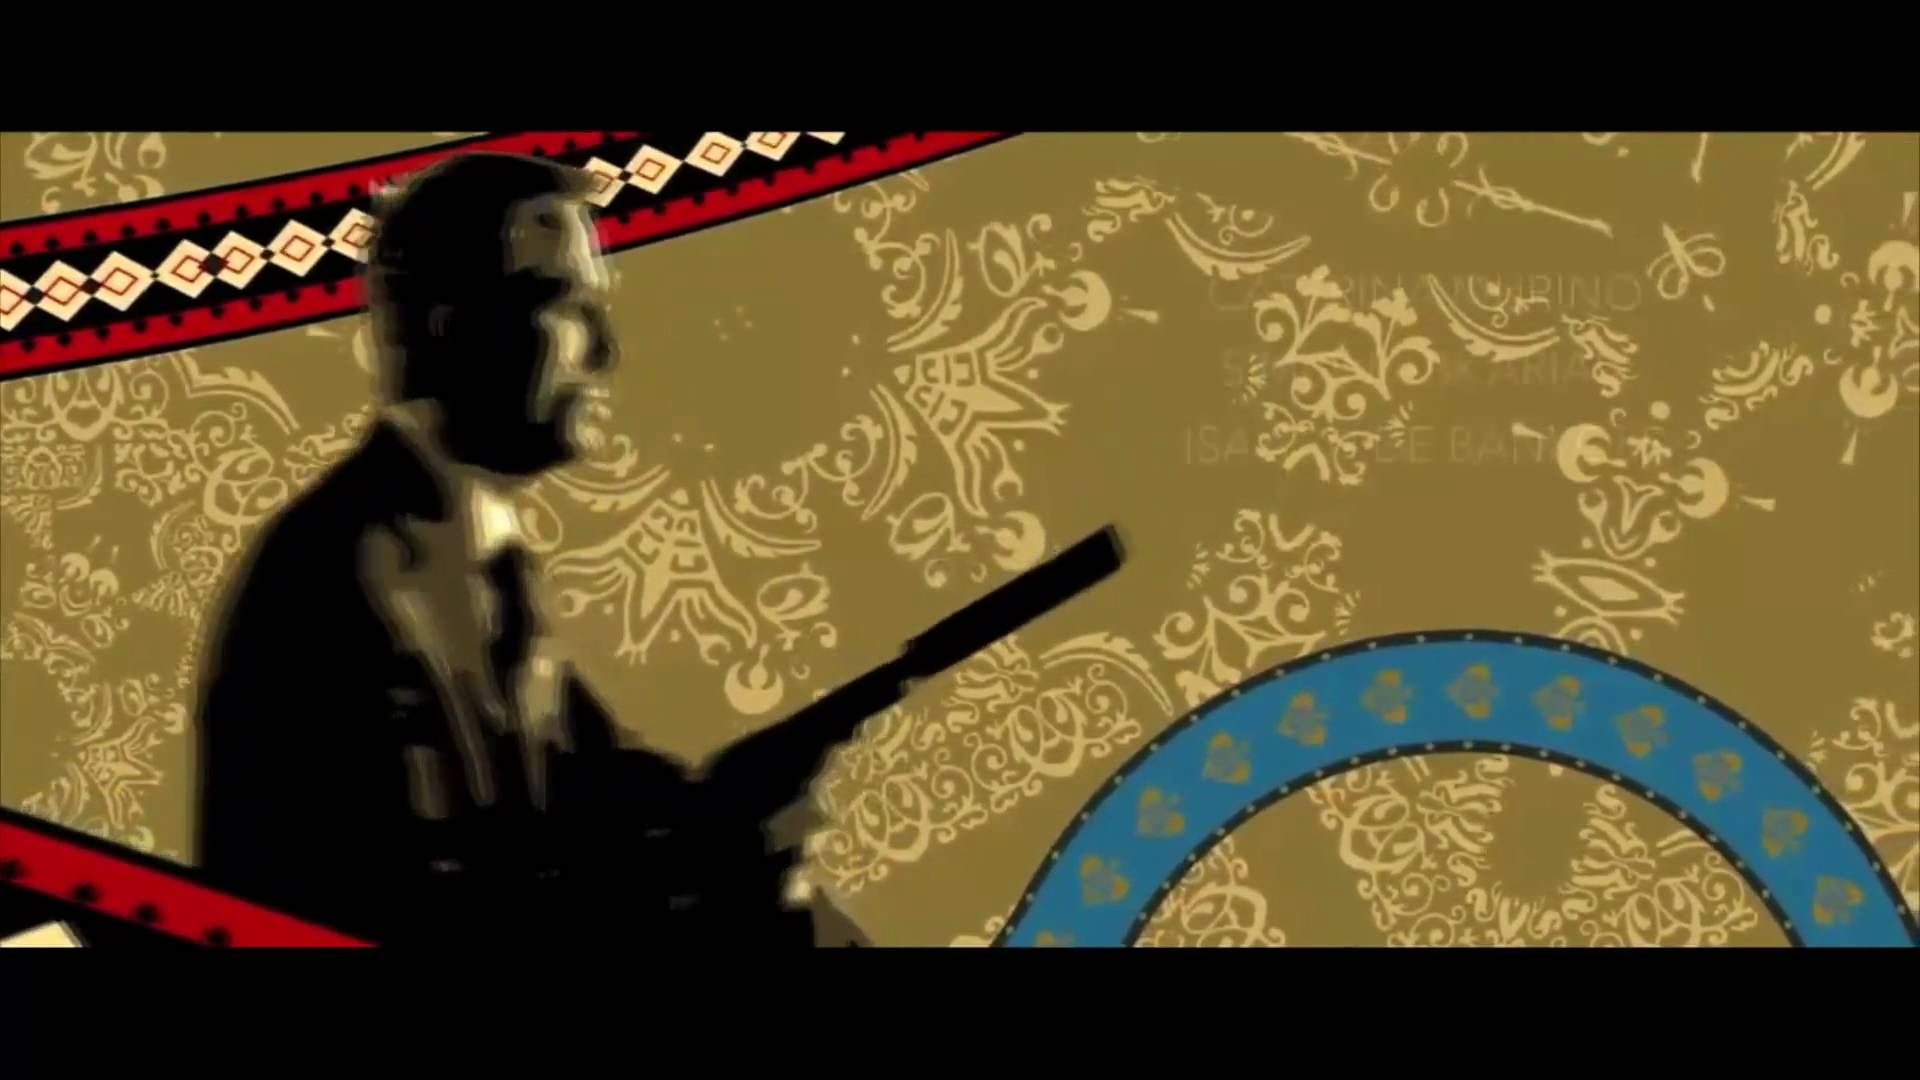 You know my name casino royale intro max games guitar maniac 2